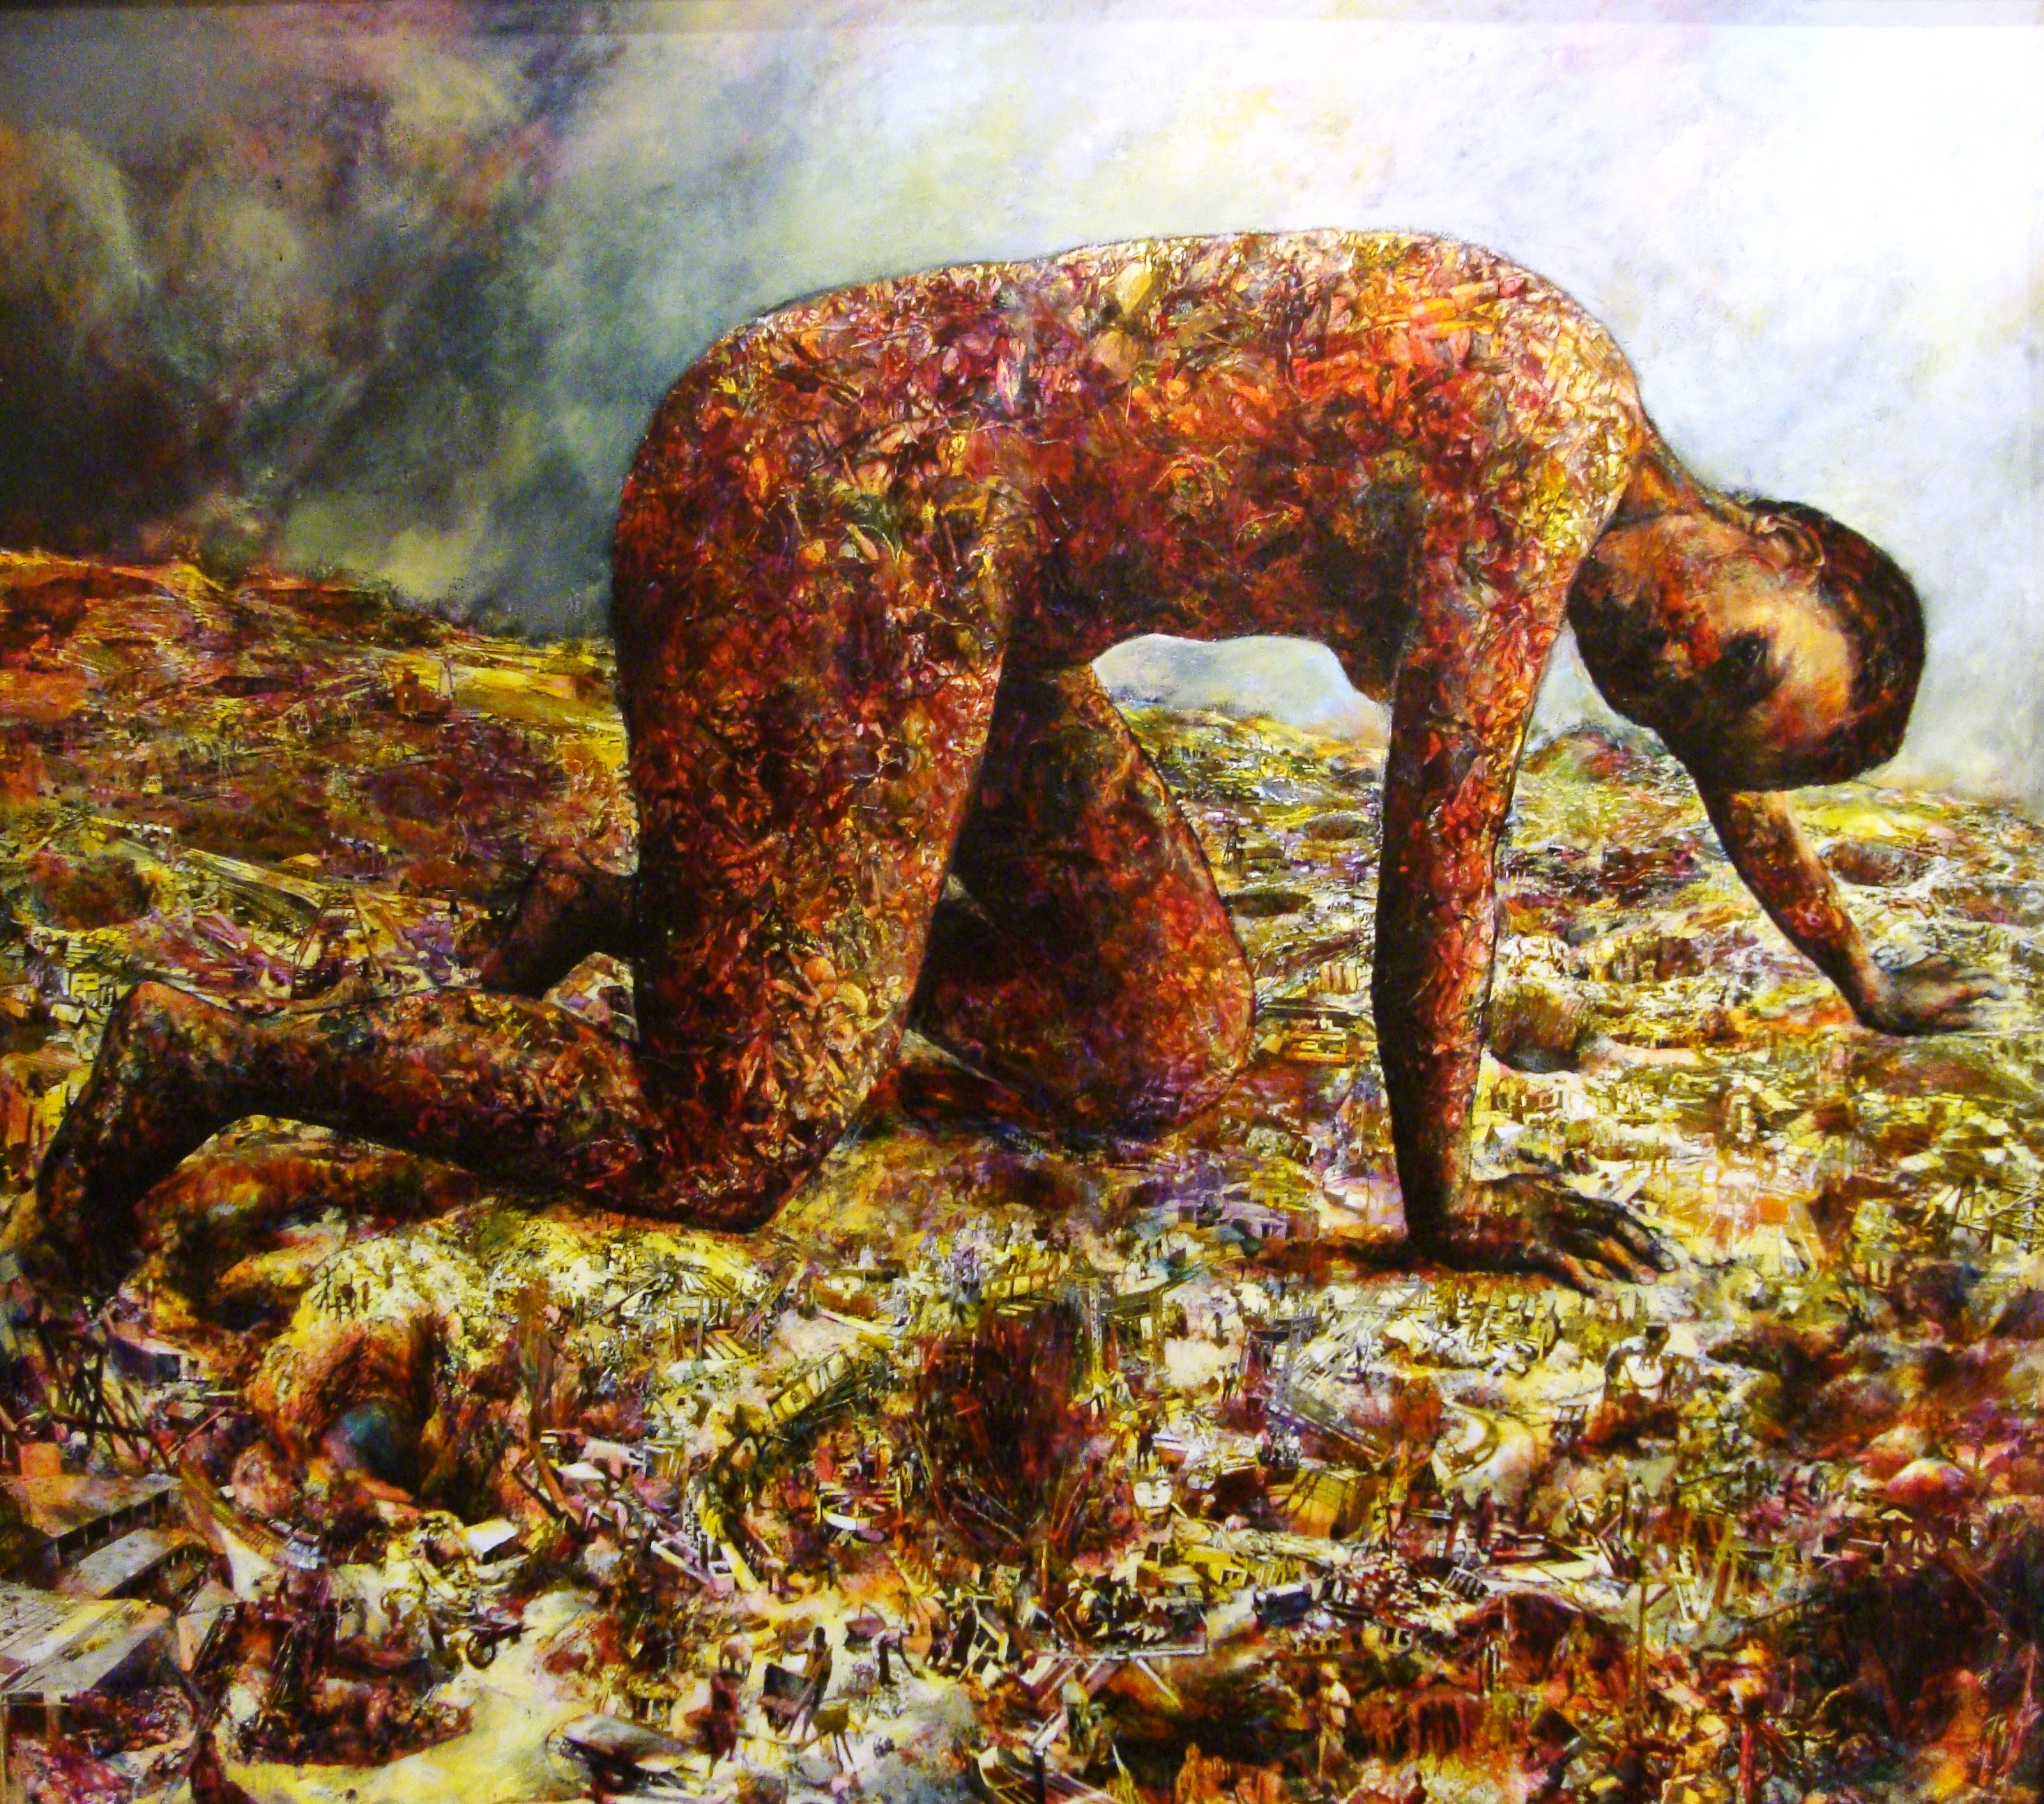 Penny Siopis, Terra Incognita, 1990, Oil and collage on board, 175 x 165cm. UFS Art Collection.